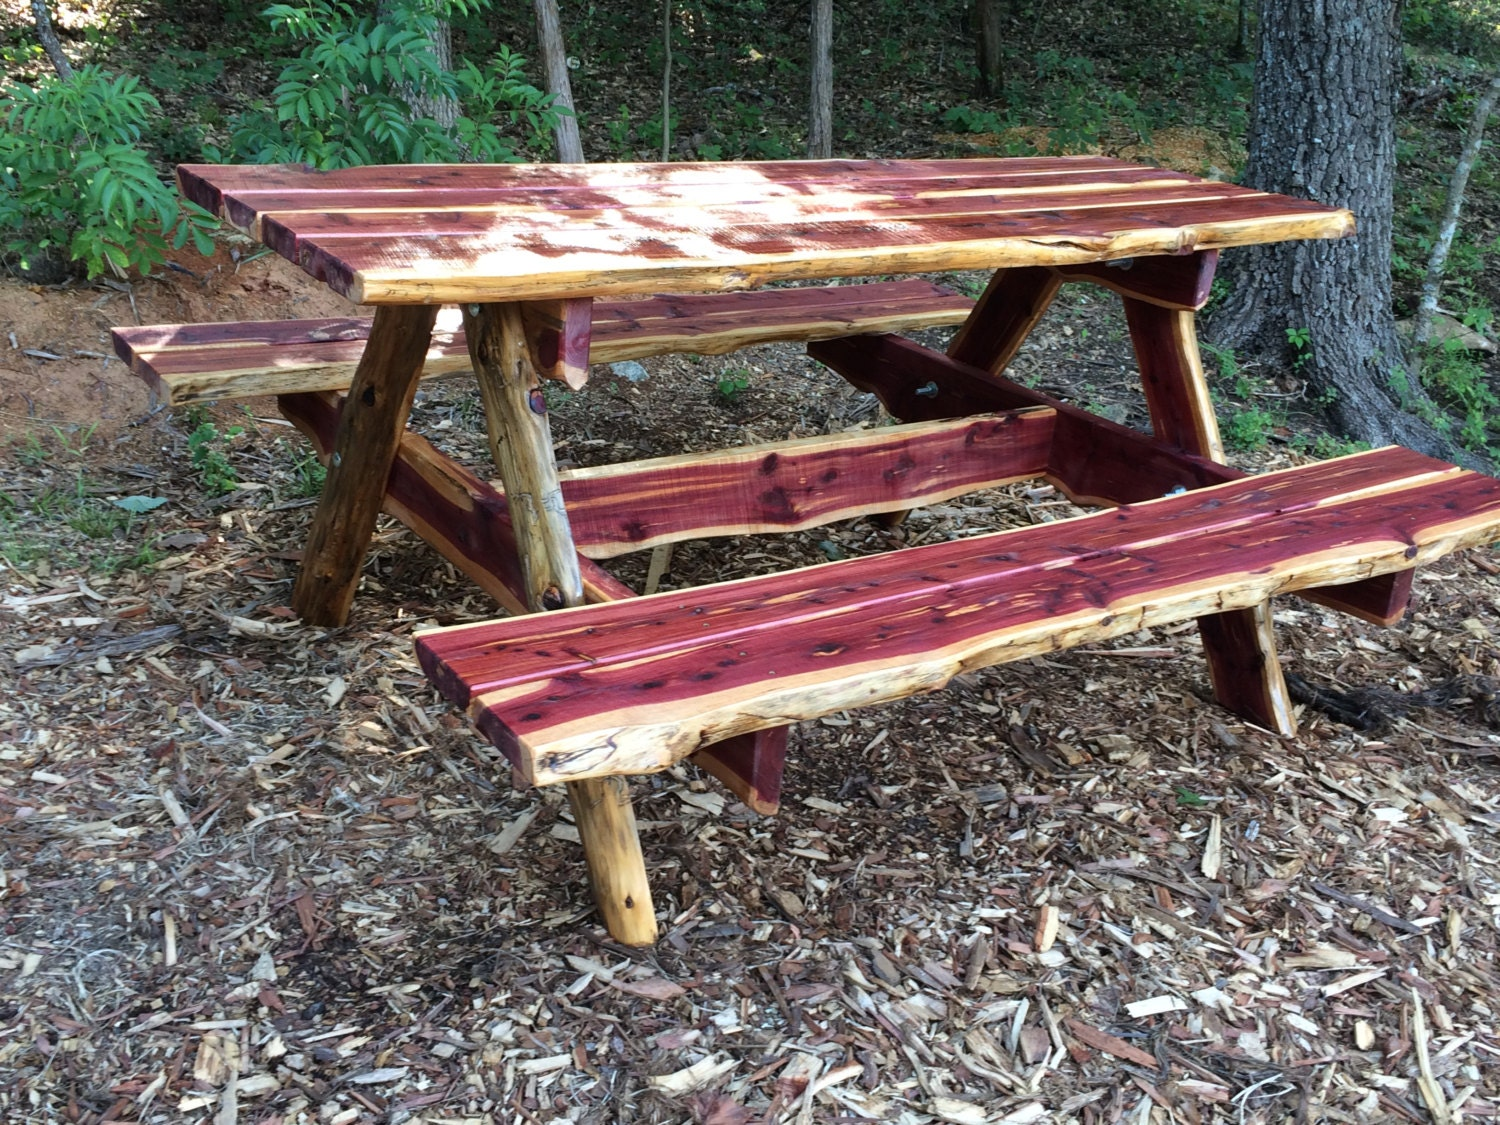 6 Ft Live Edge Eastern Red Cedar Picnic Table   Rustic Unique Picnic Table    Live Edge Picnic Table   Poverty Gulch Rustics   Christmas Gift